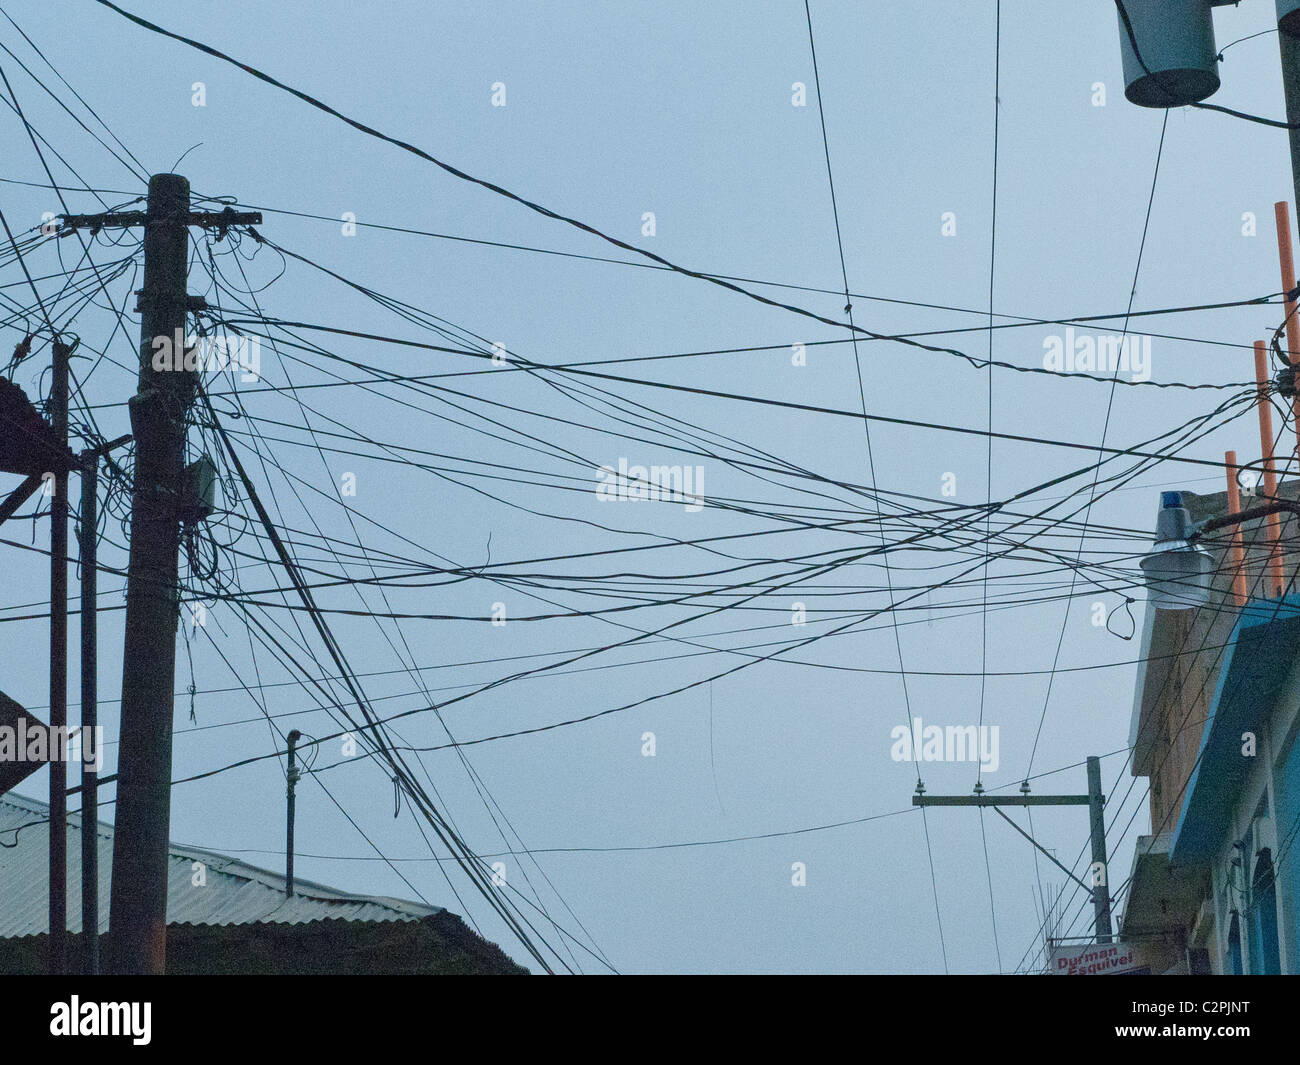 Wire Jumble Stock Photos & Wire Jumble Stock Images - Alamy